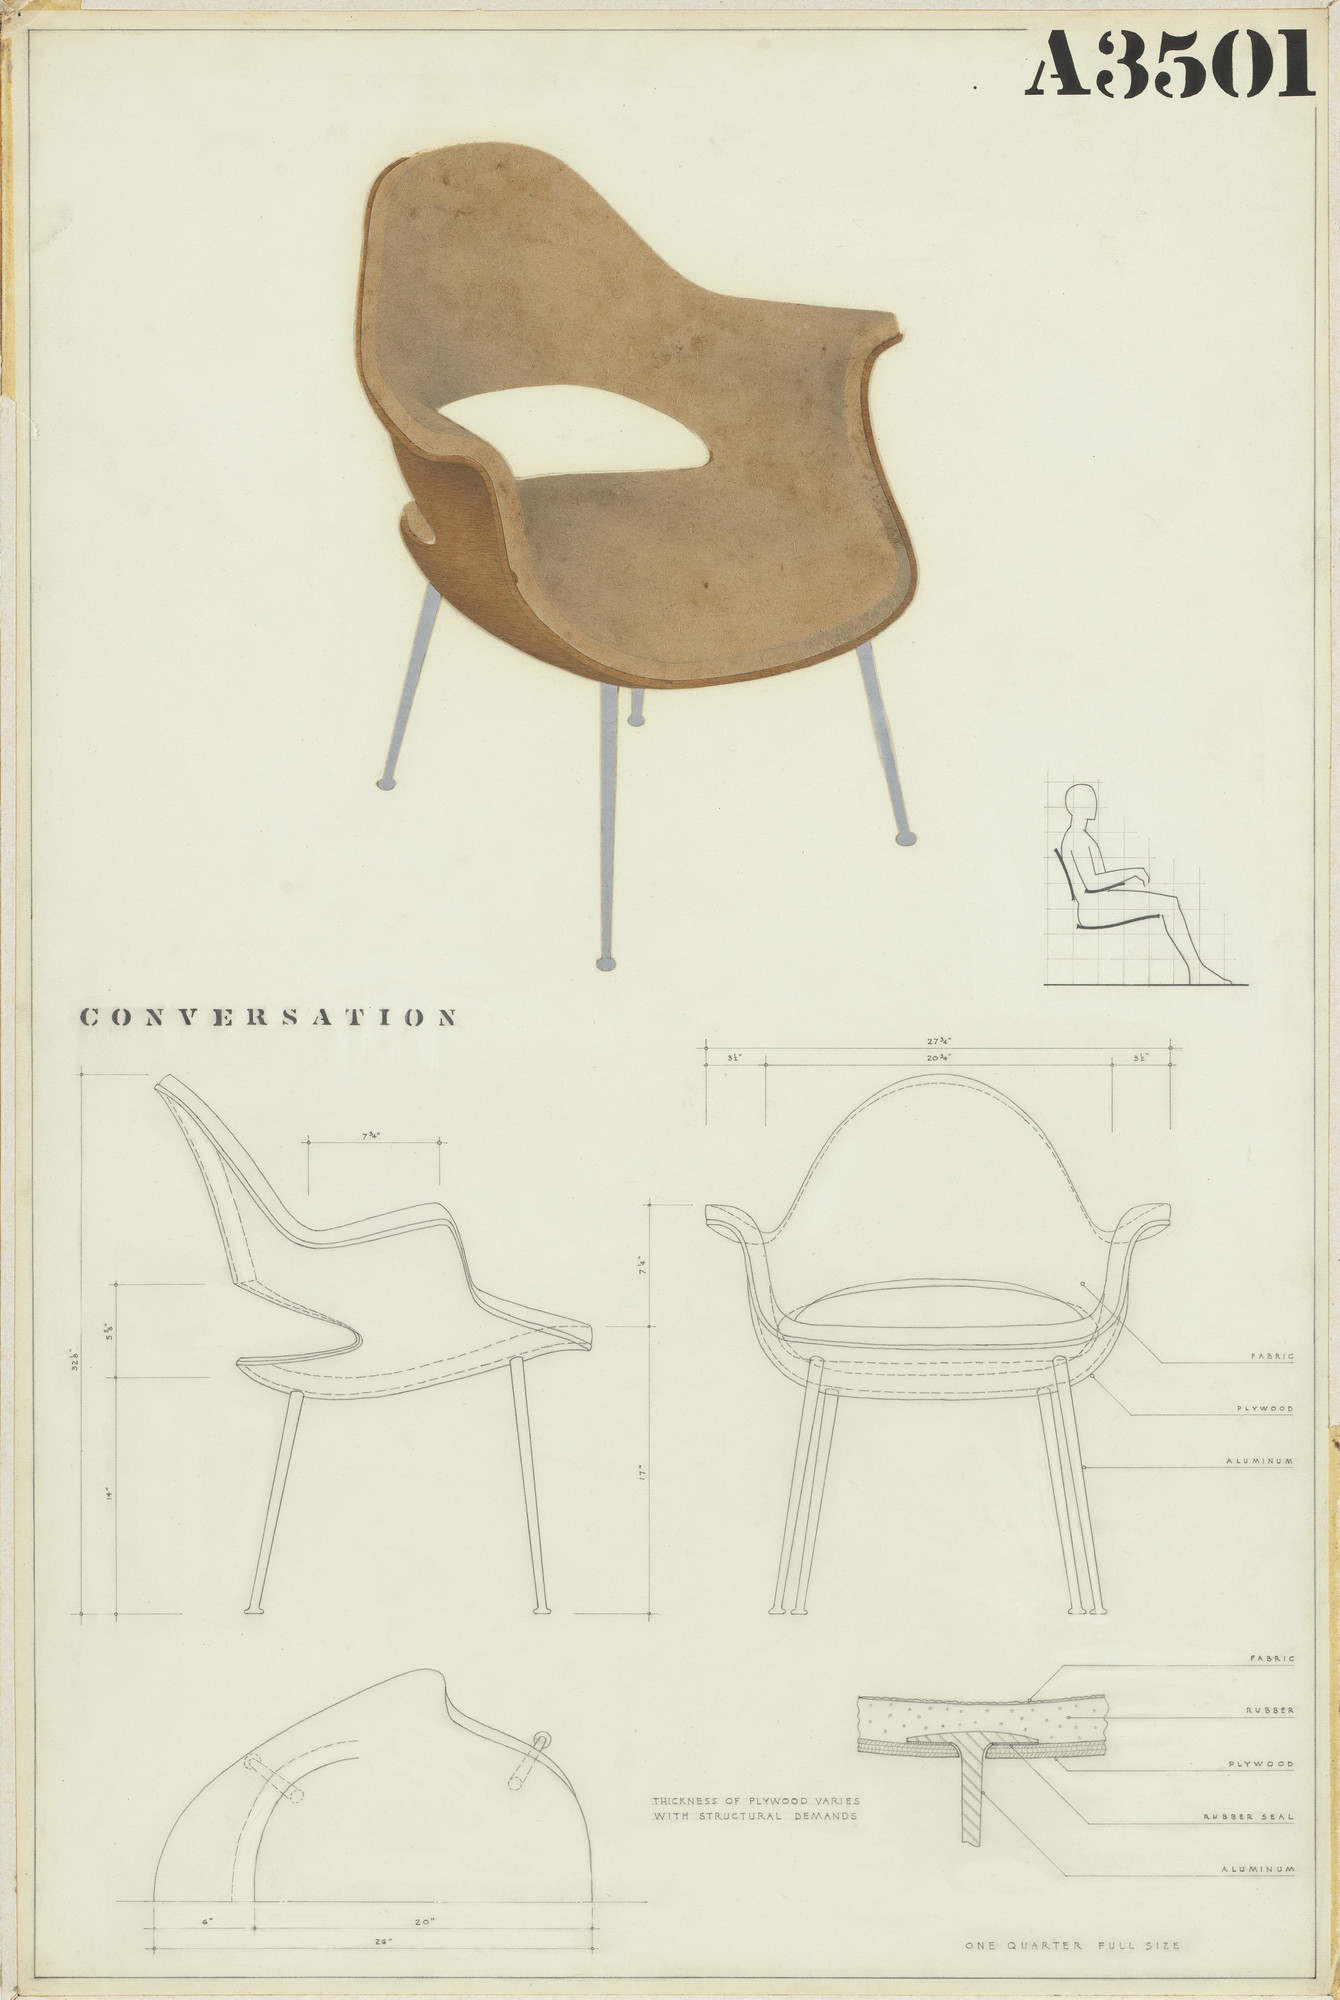 Charles Eames, Eero Saarinen. Low-Back Armchair (Entry Panel for MoMA Competition for Organic Design in Home Furnishings). 1940